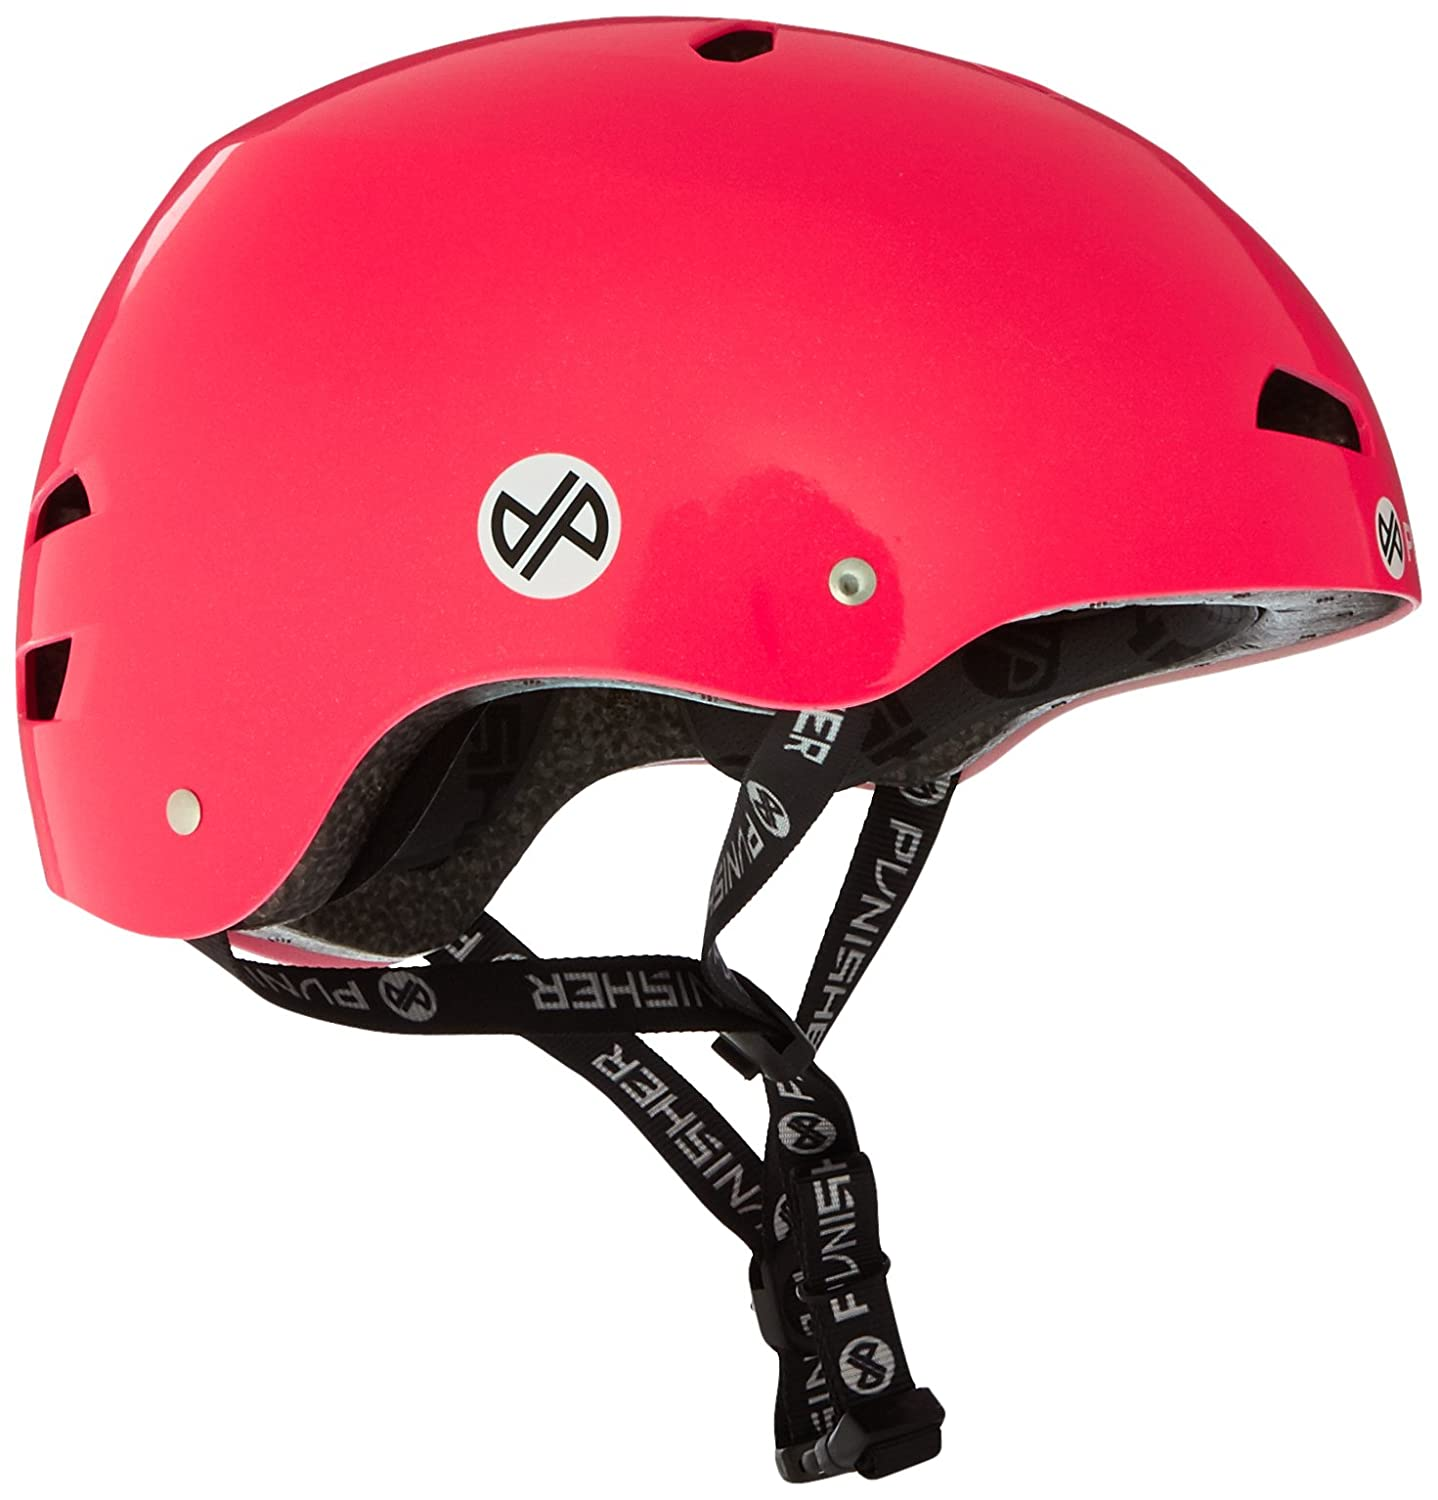 Punisher Skateboards Pro Series 13-Vent Dual Safety Certified BMX Bike and Skateboard Helmet Youth//Teen 9+